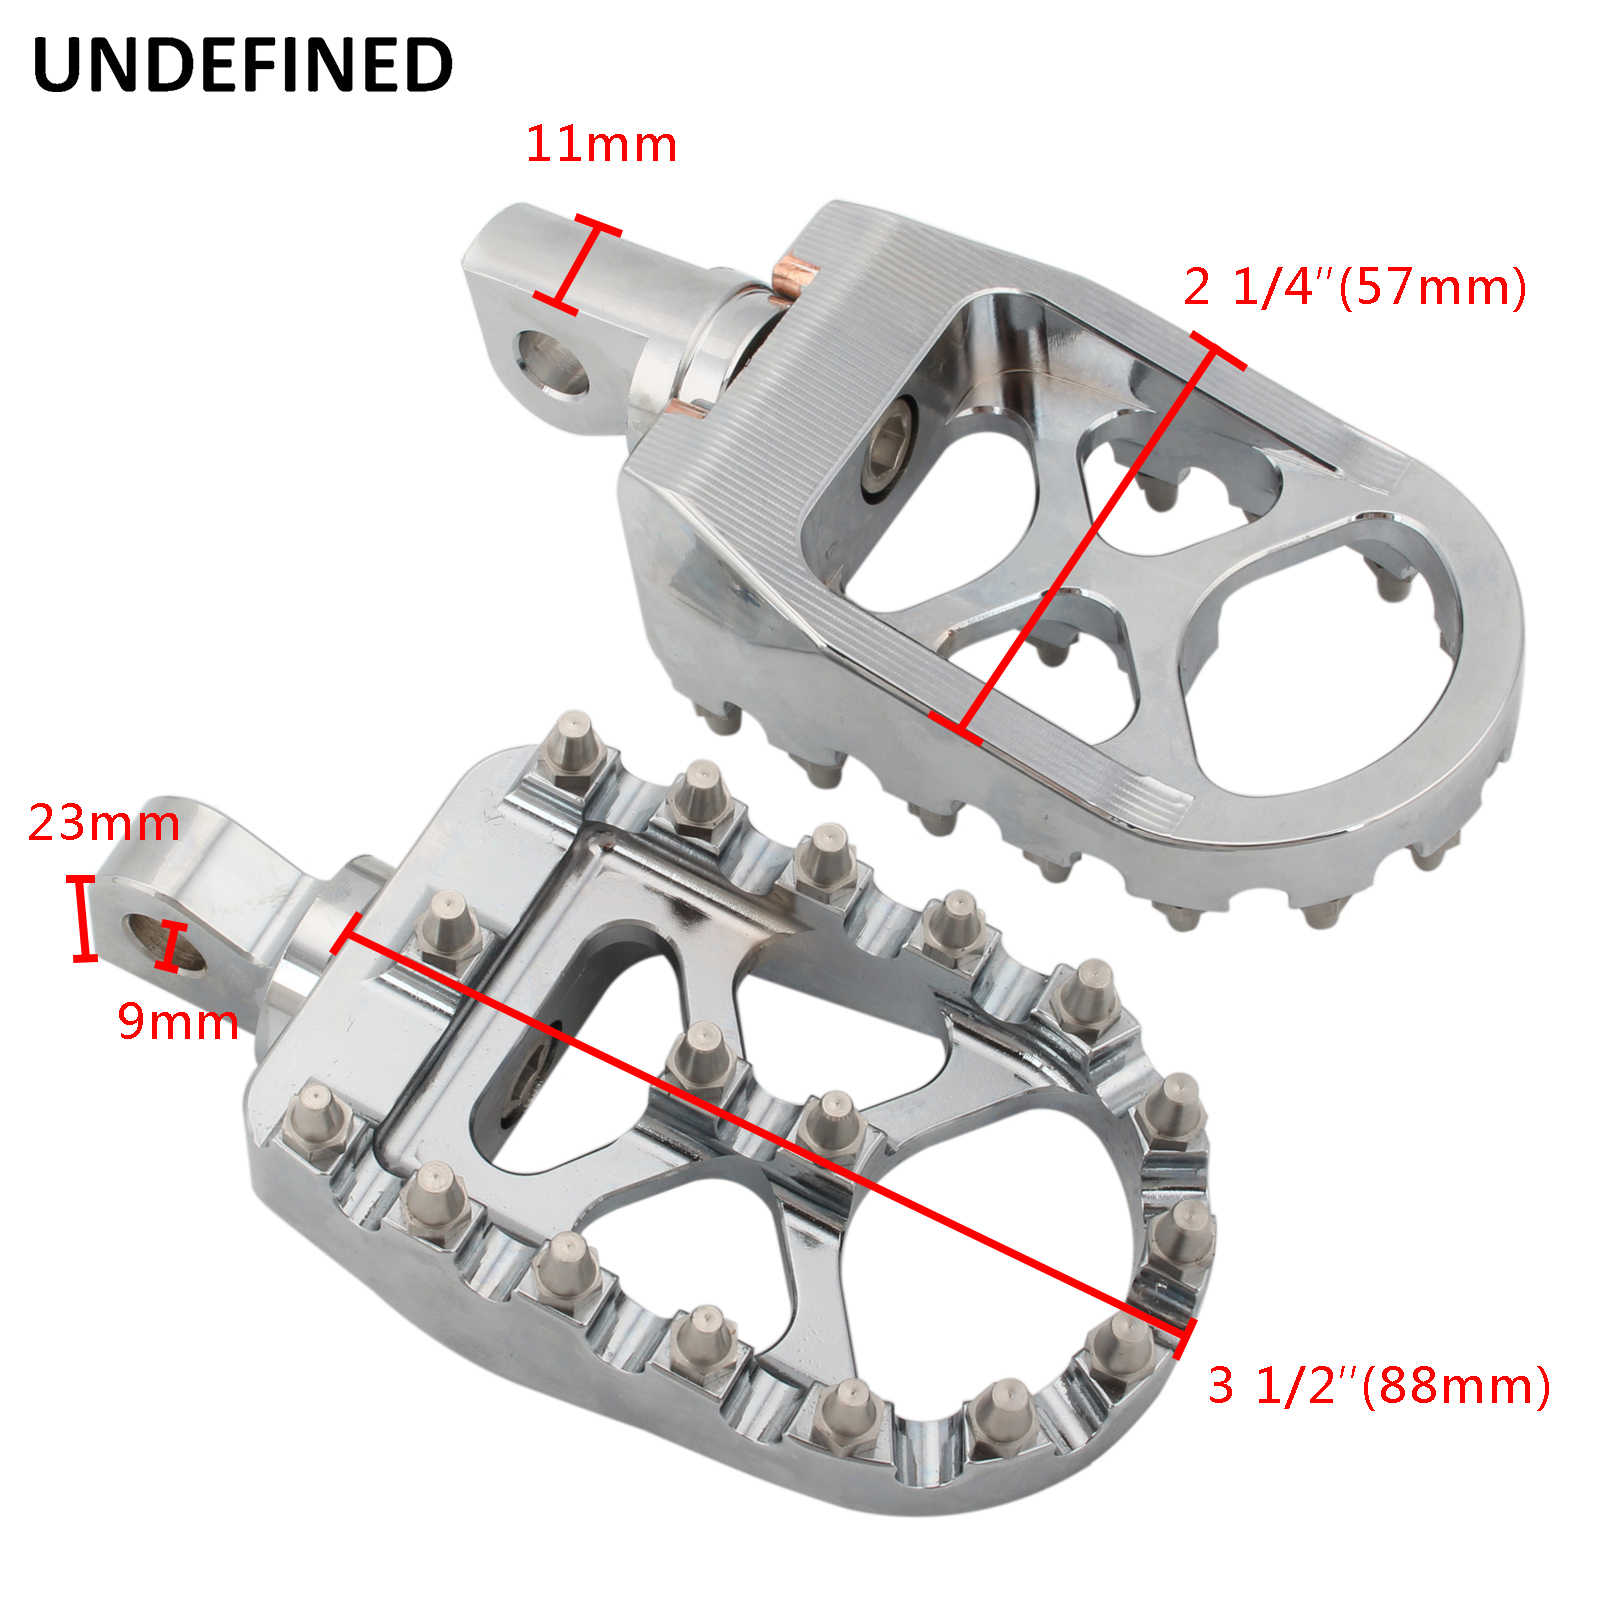 360/° Roating Foot Pedals Footpegs Rests Suit for Harley Davidson Dyna Sportster Bobber Chrome Goldfire Offroad Wide Motorcycle Fat Foot Pegs Pedals